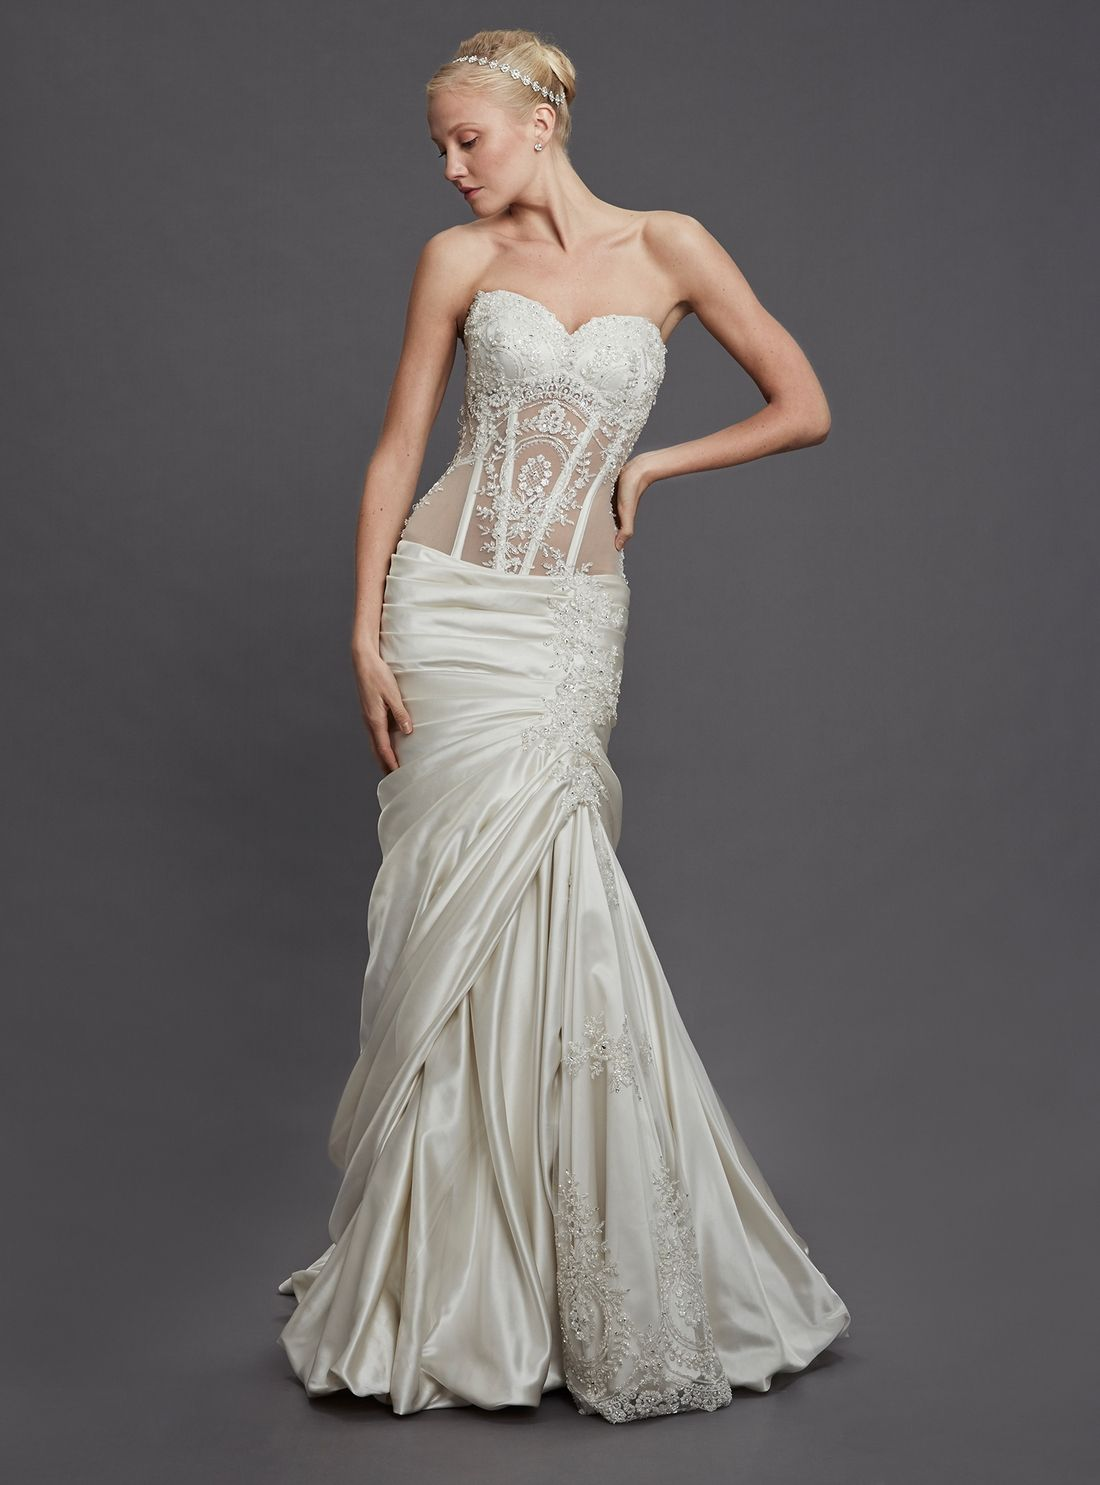 kleinfeldbridalcom perla d by pnina tornai bridal gown With pnina tornai mermaid wedding dress